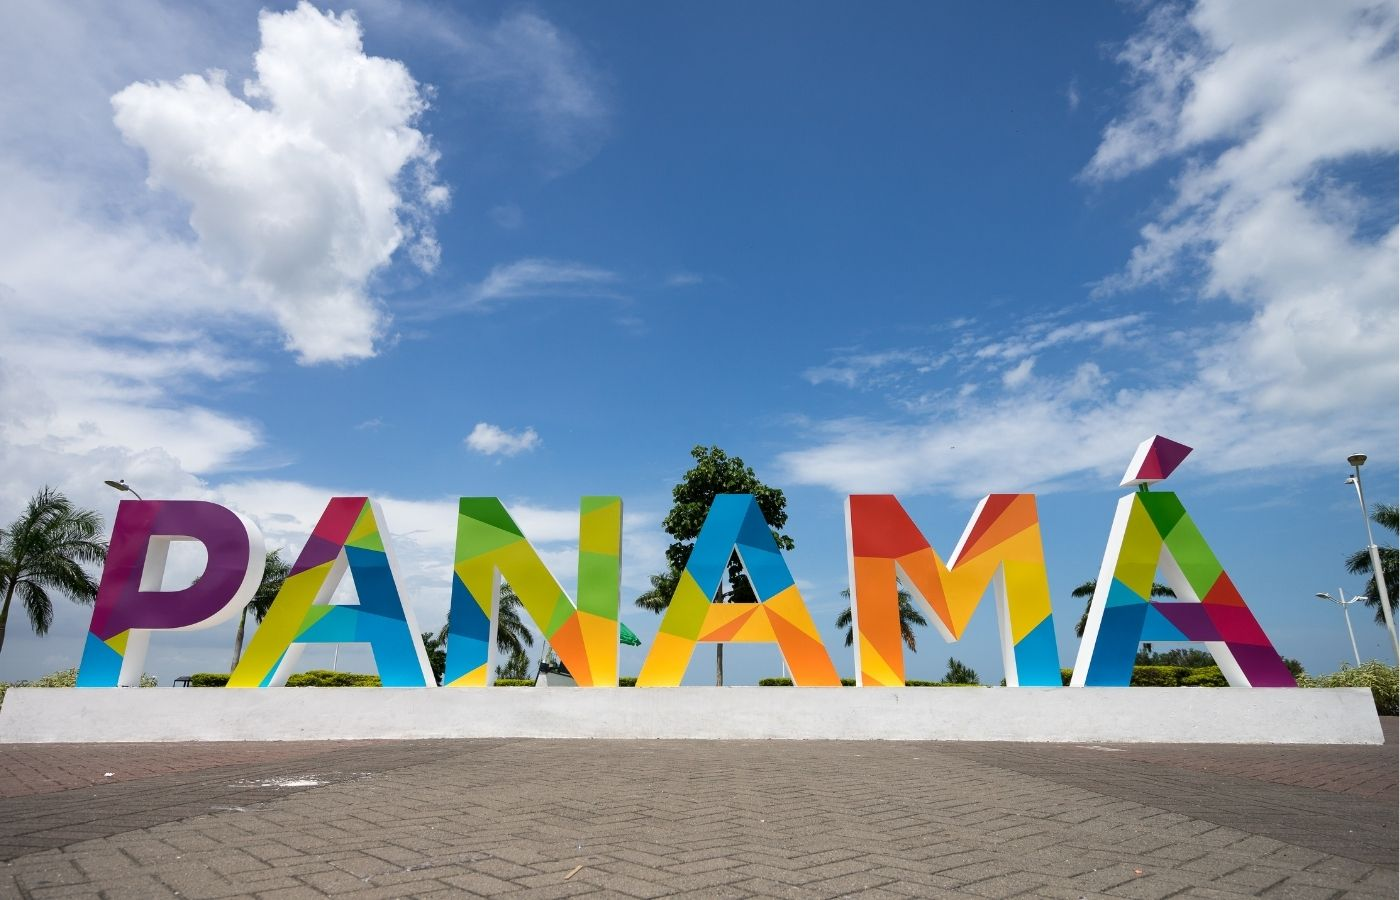 How To Buy A Yacht In Panama City, Panama